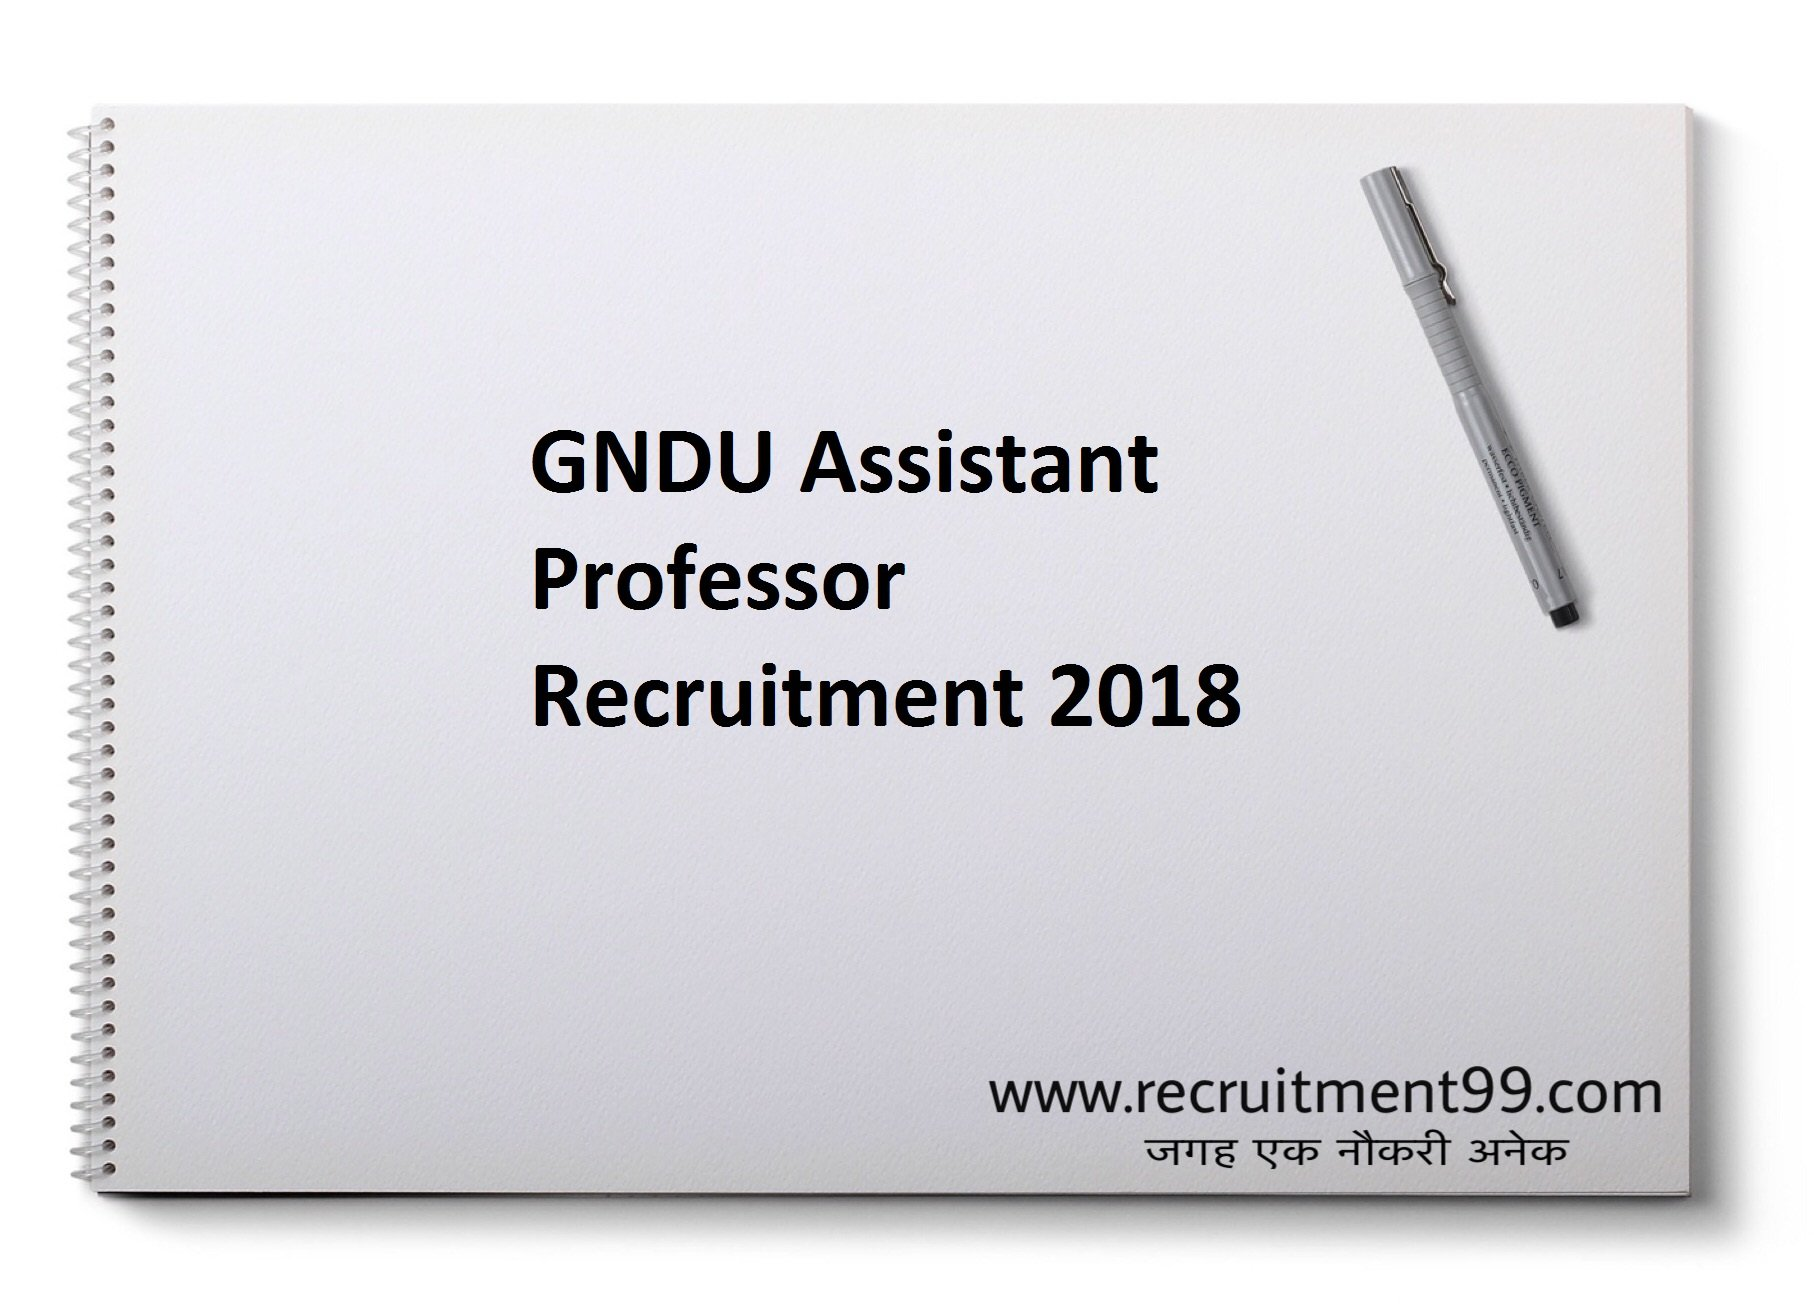 GNDU Assistant Professor Recruitment Admit Card Result 2018